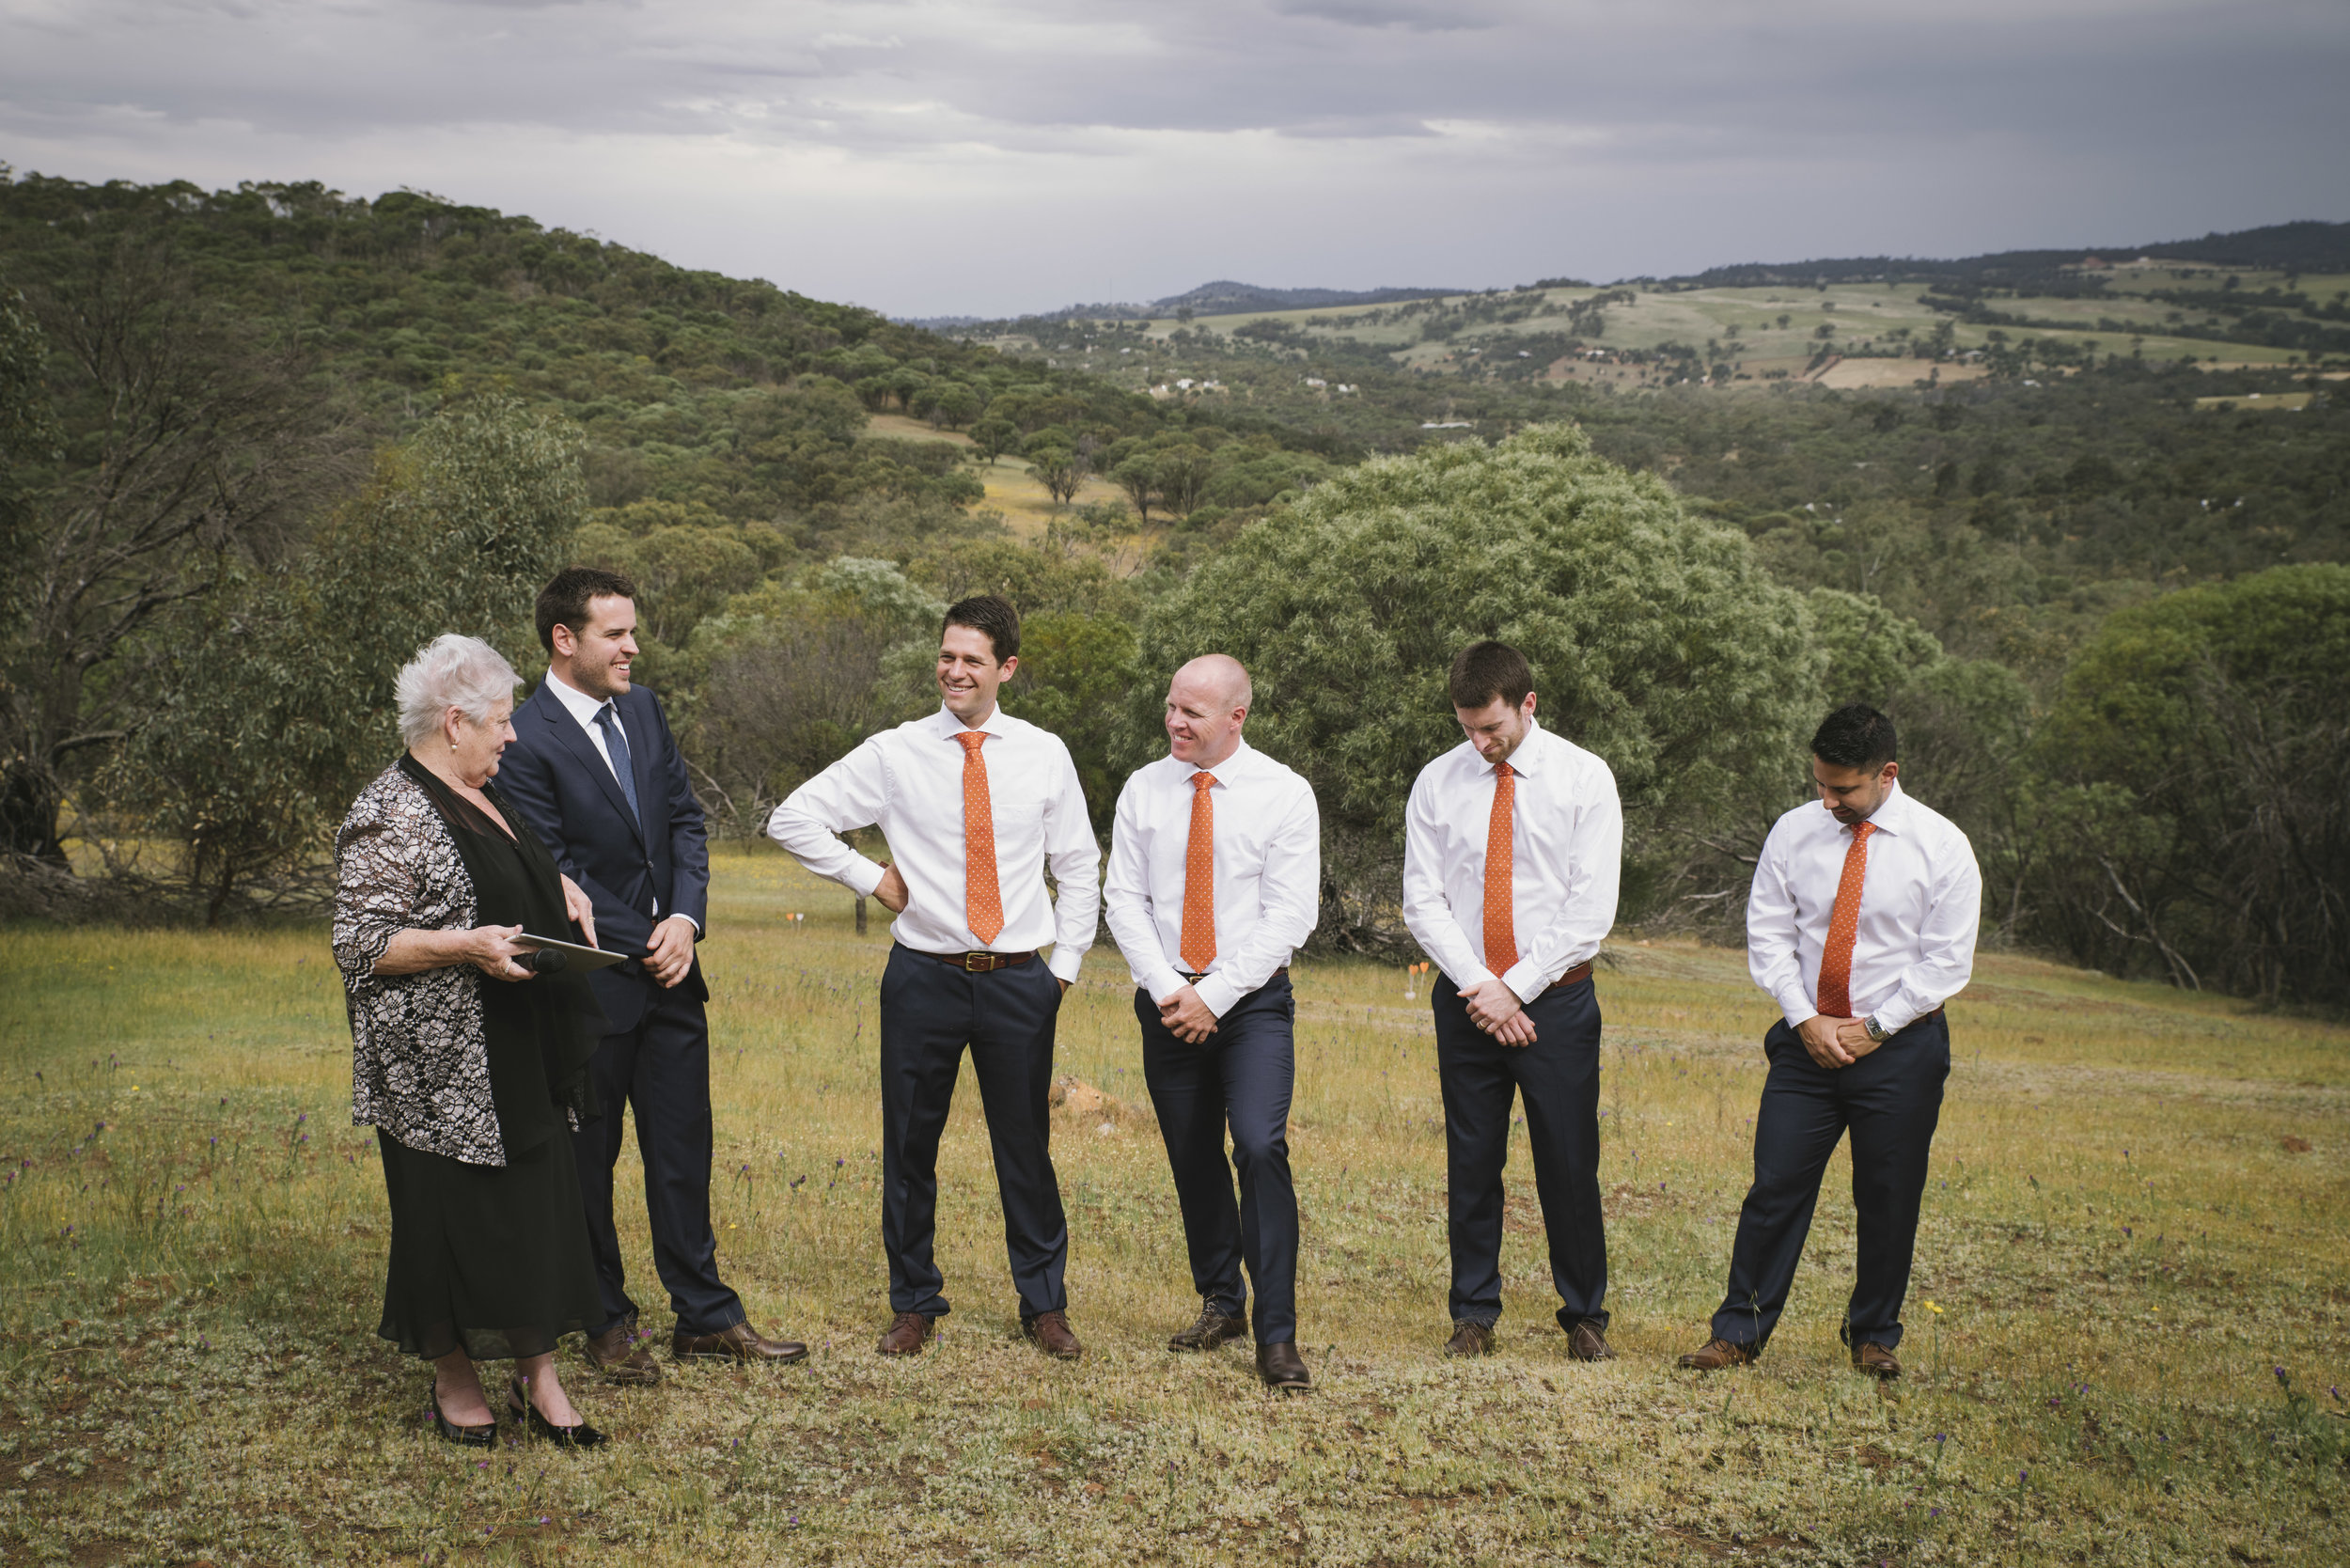 Avon Valley Toodyay Rustic Rural Festival Wedding  (21).jpg